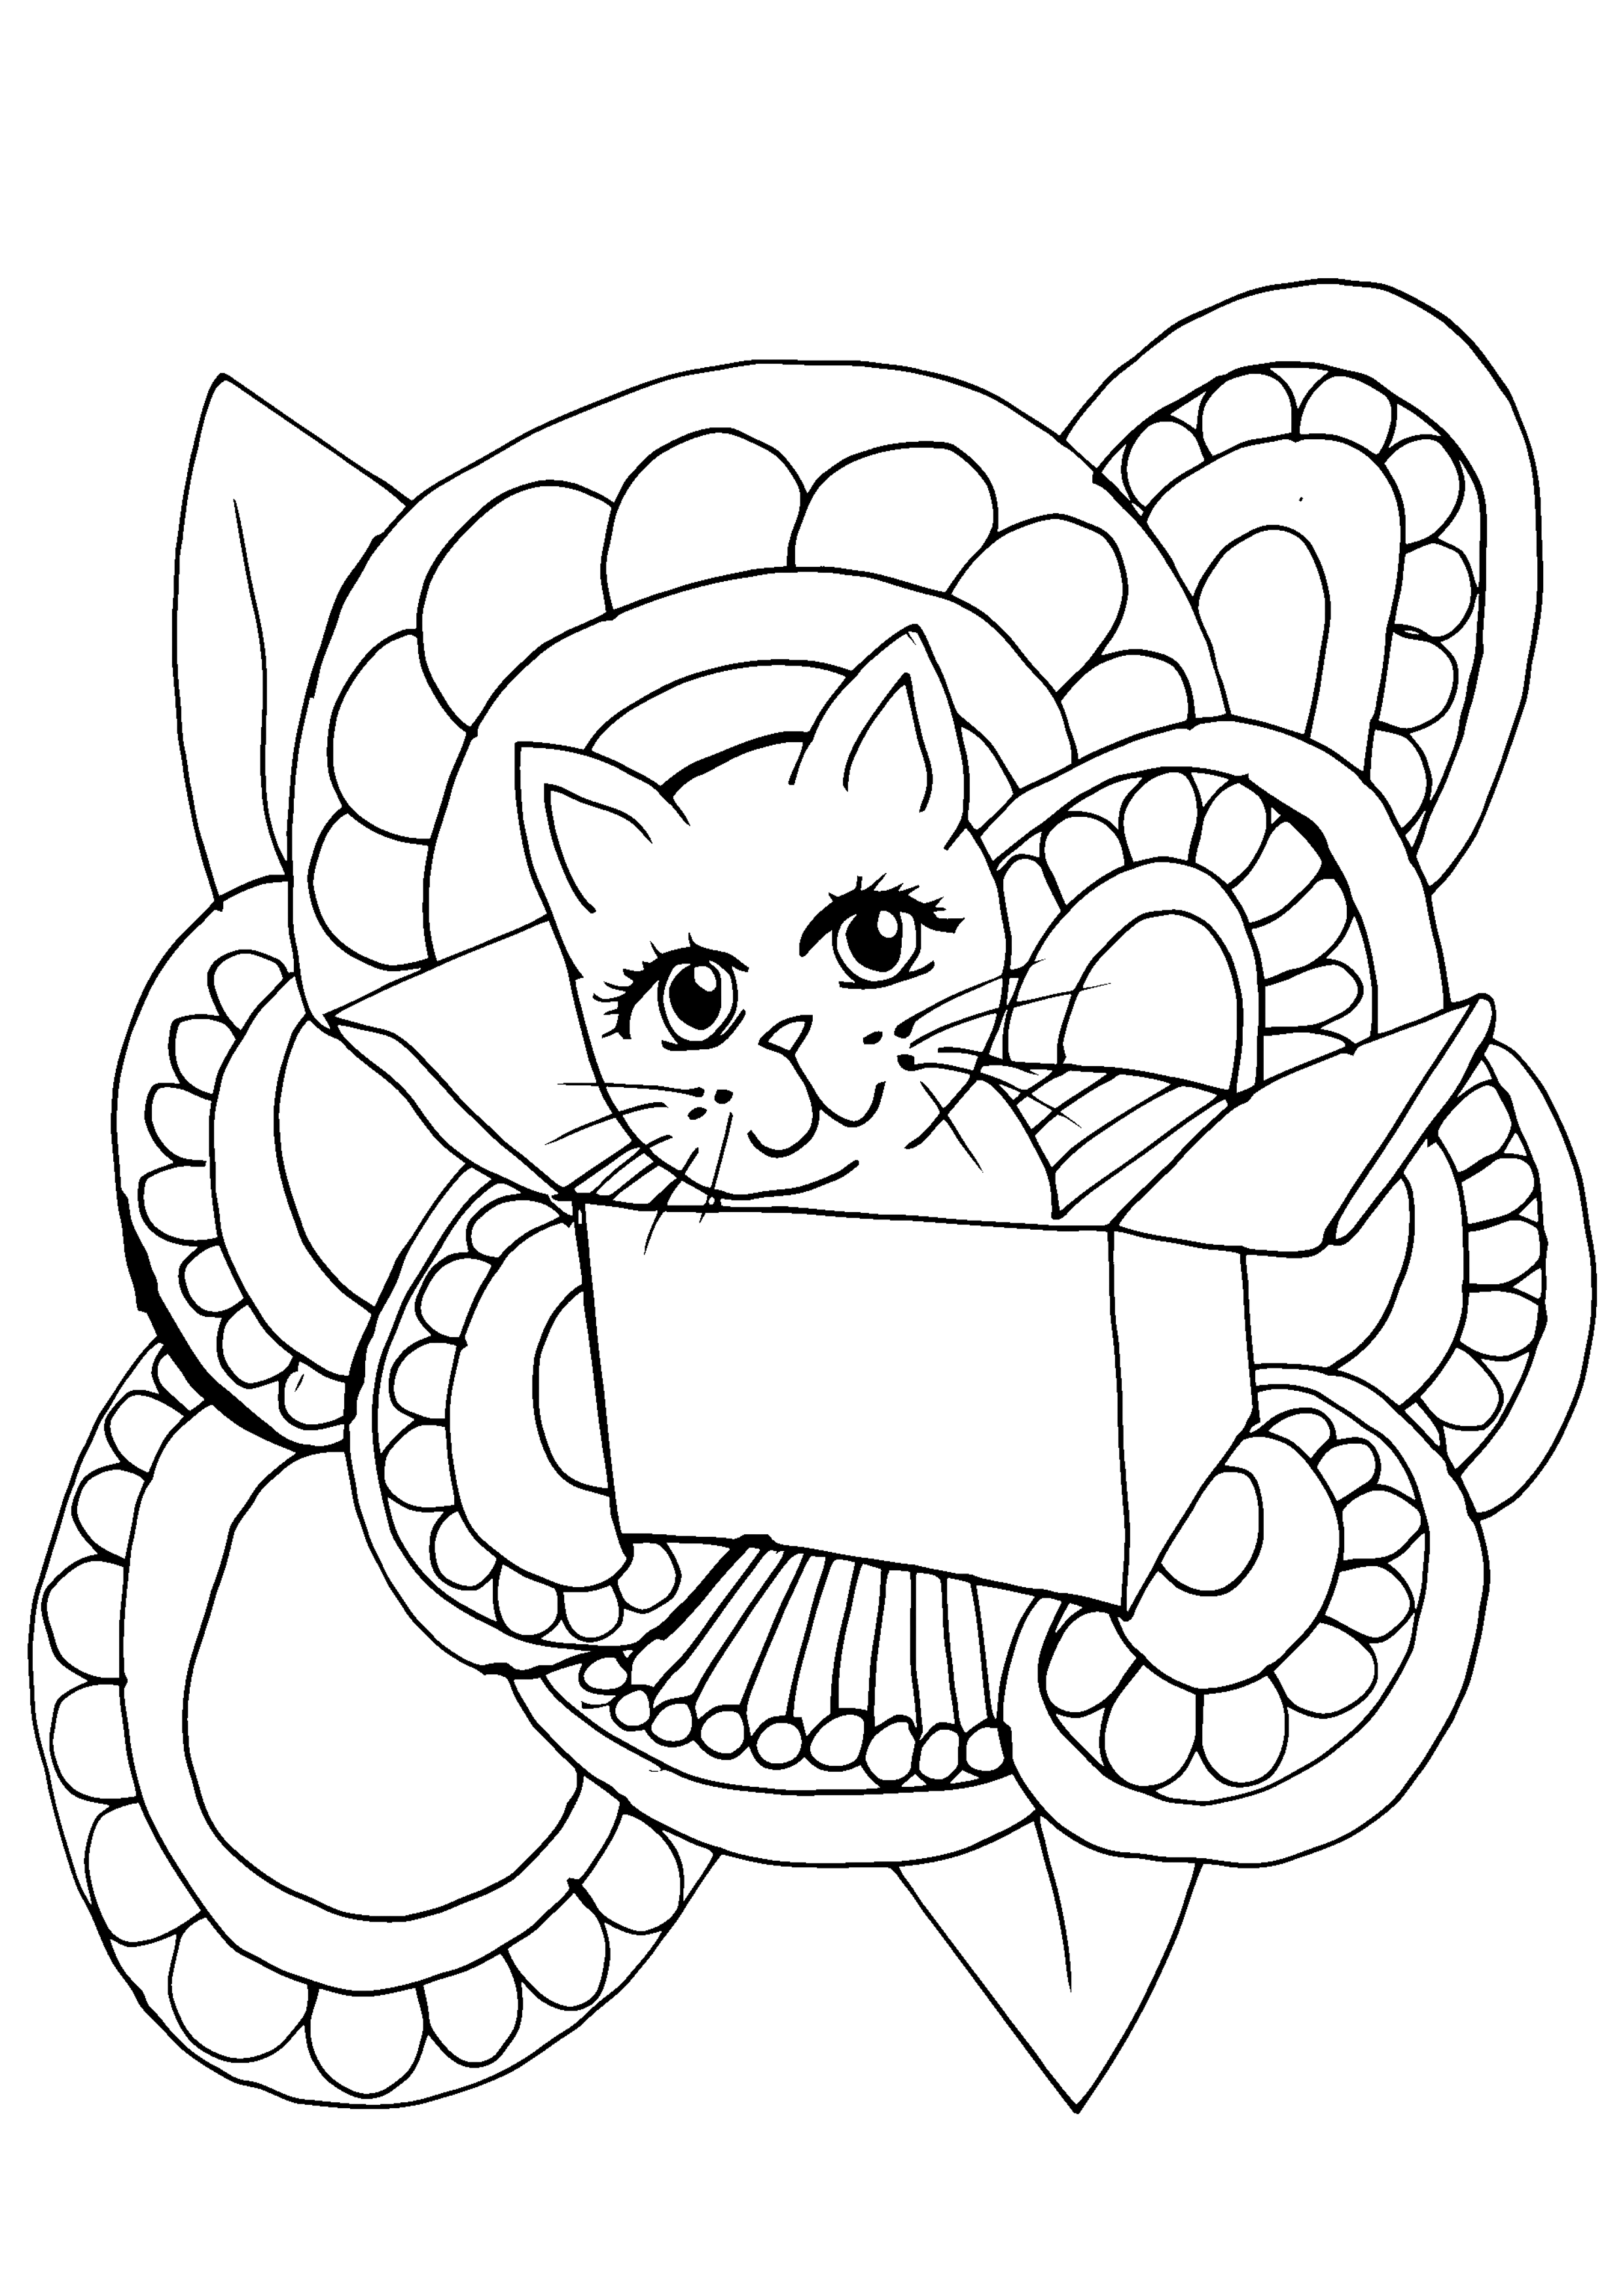 Free Coloring Book Page – 1099